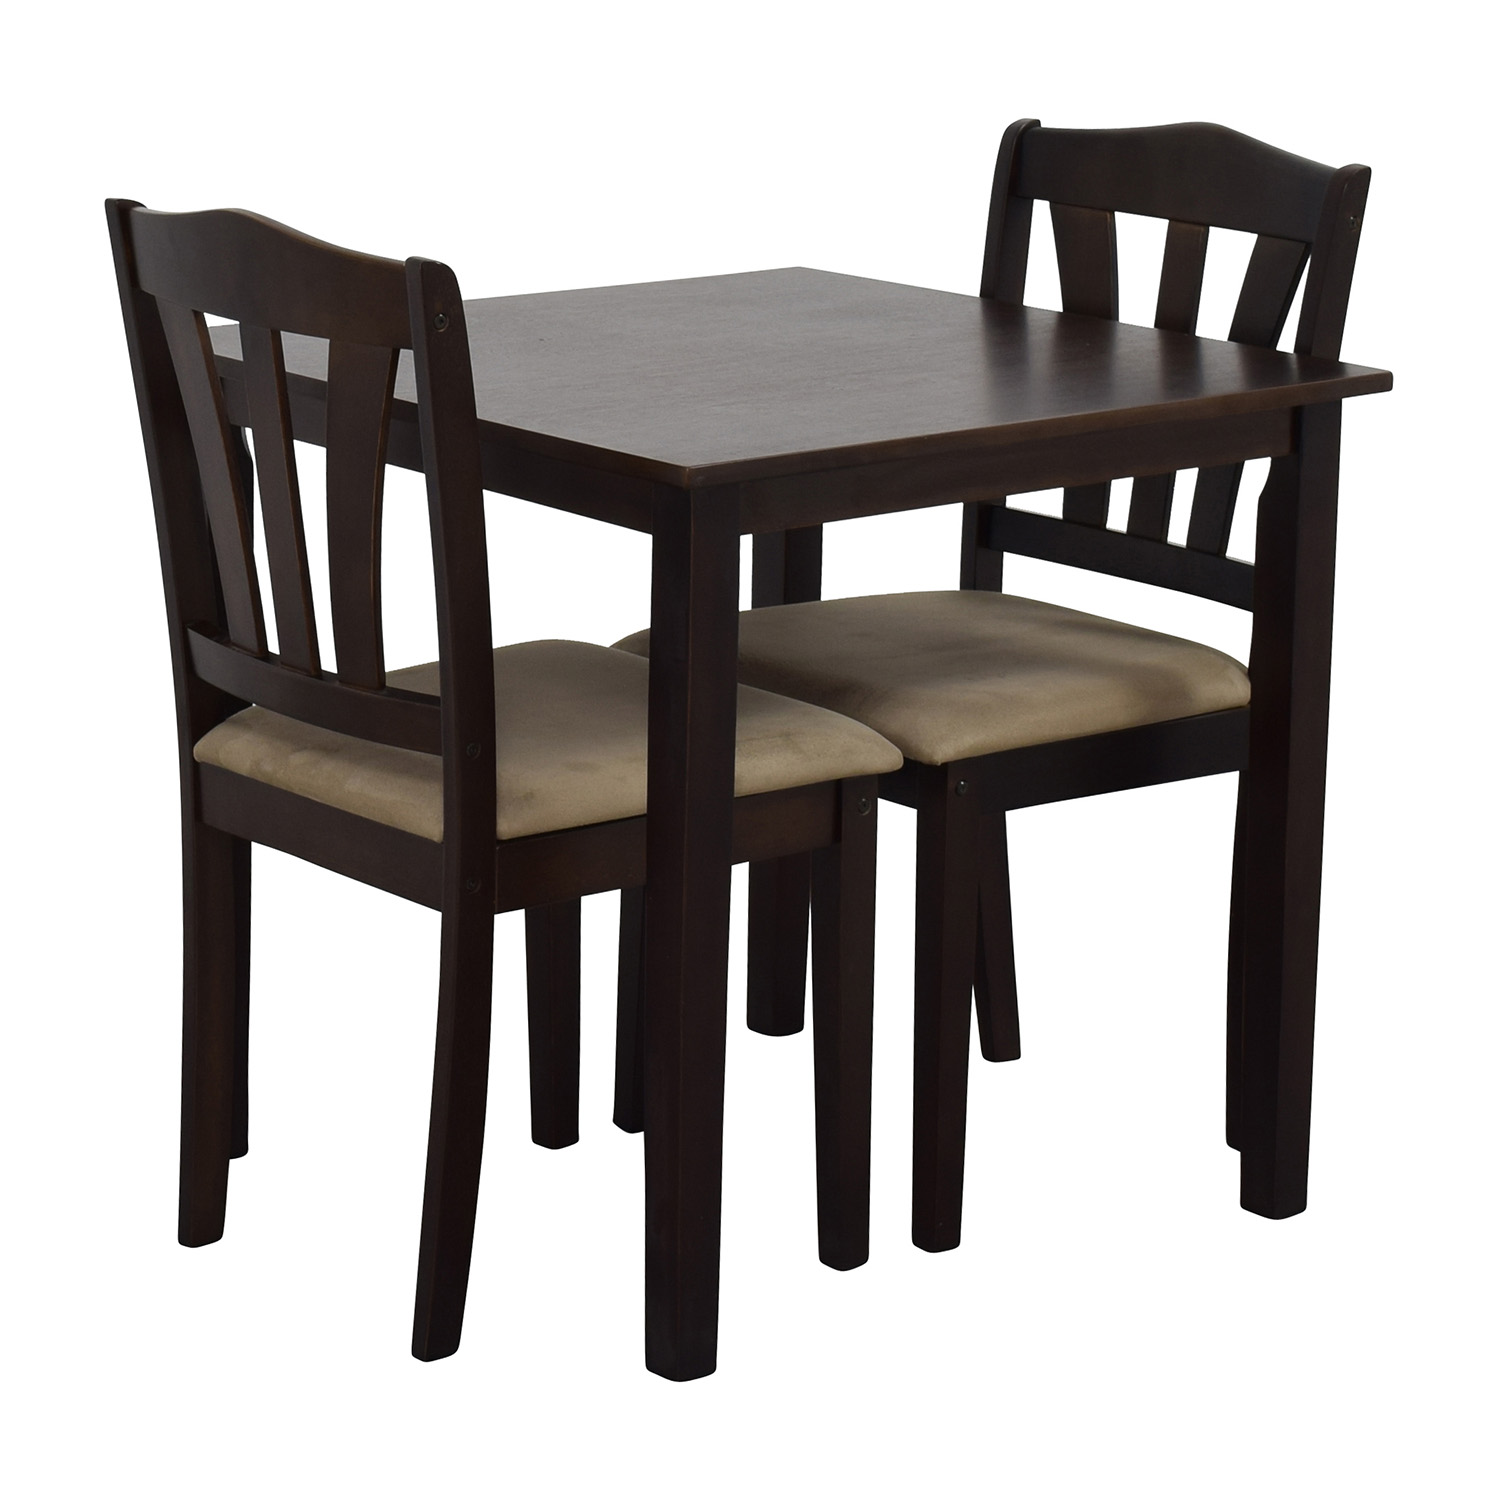 Off wood dining table and beige upholstered chairs